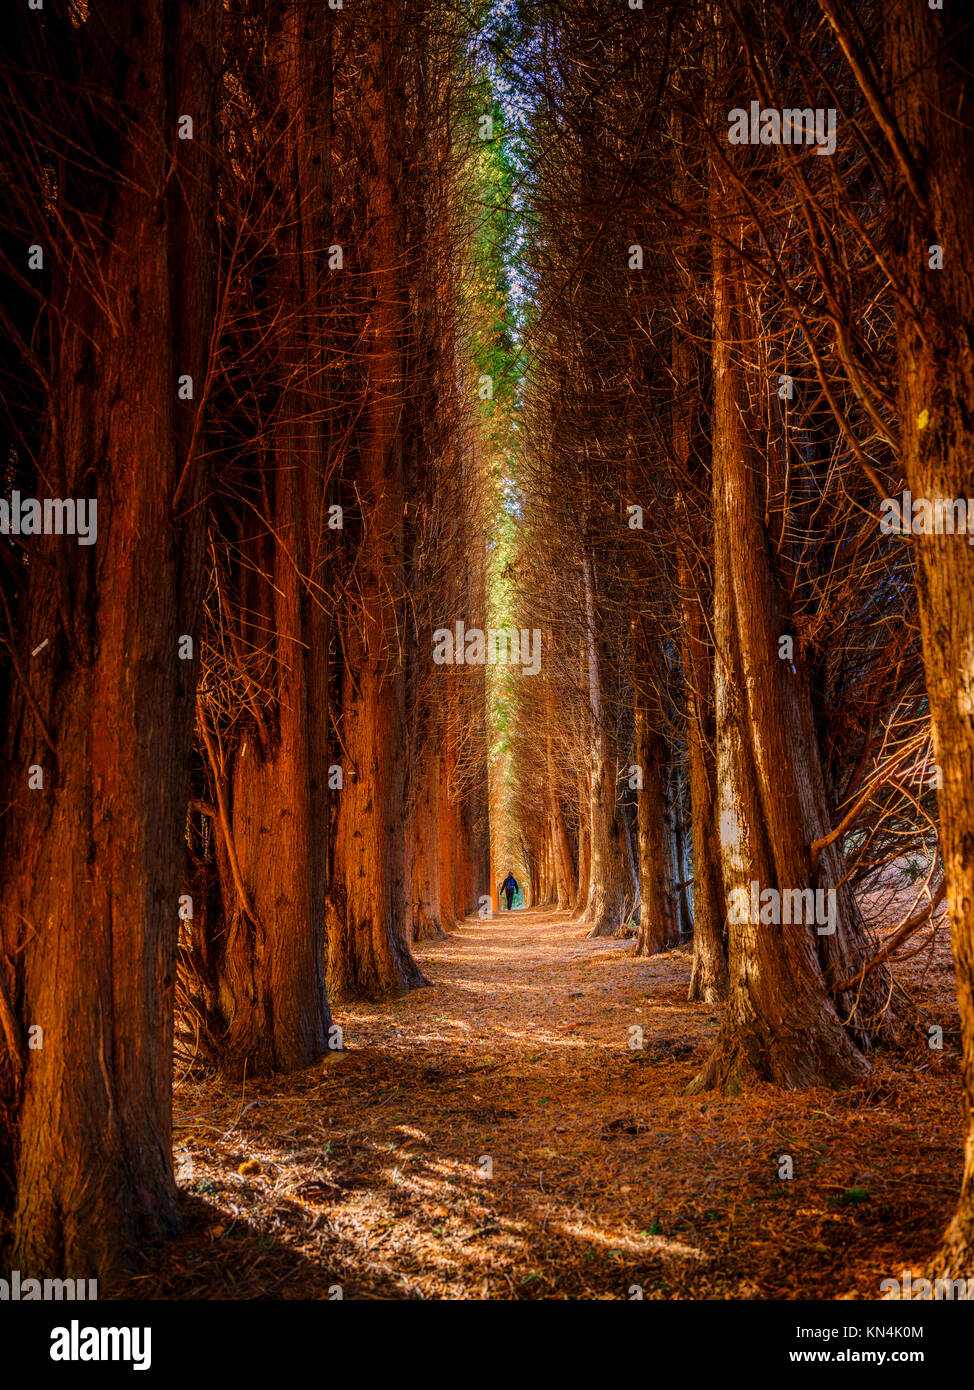 The cathedral of conifers at the Bedgebury National Pinetum and Forest in on the Sussex, Kent border. - Stock Image